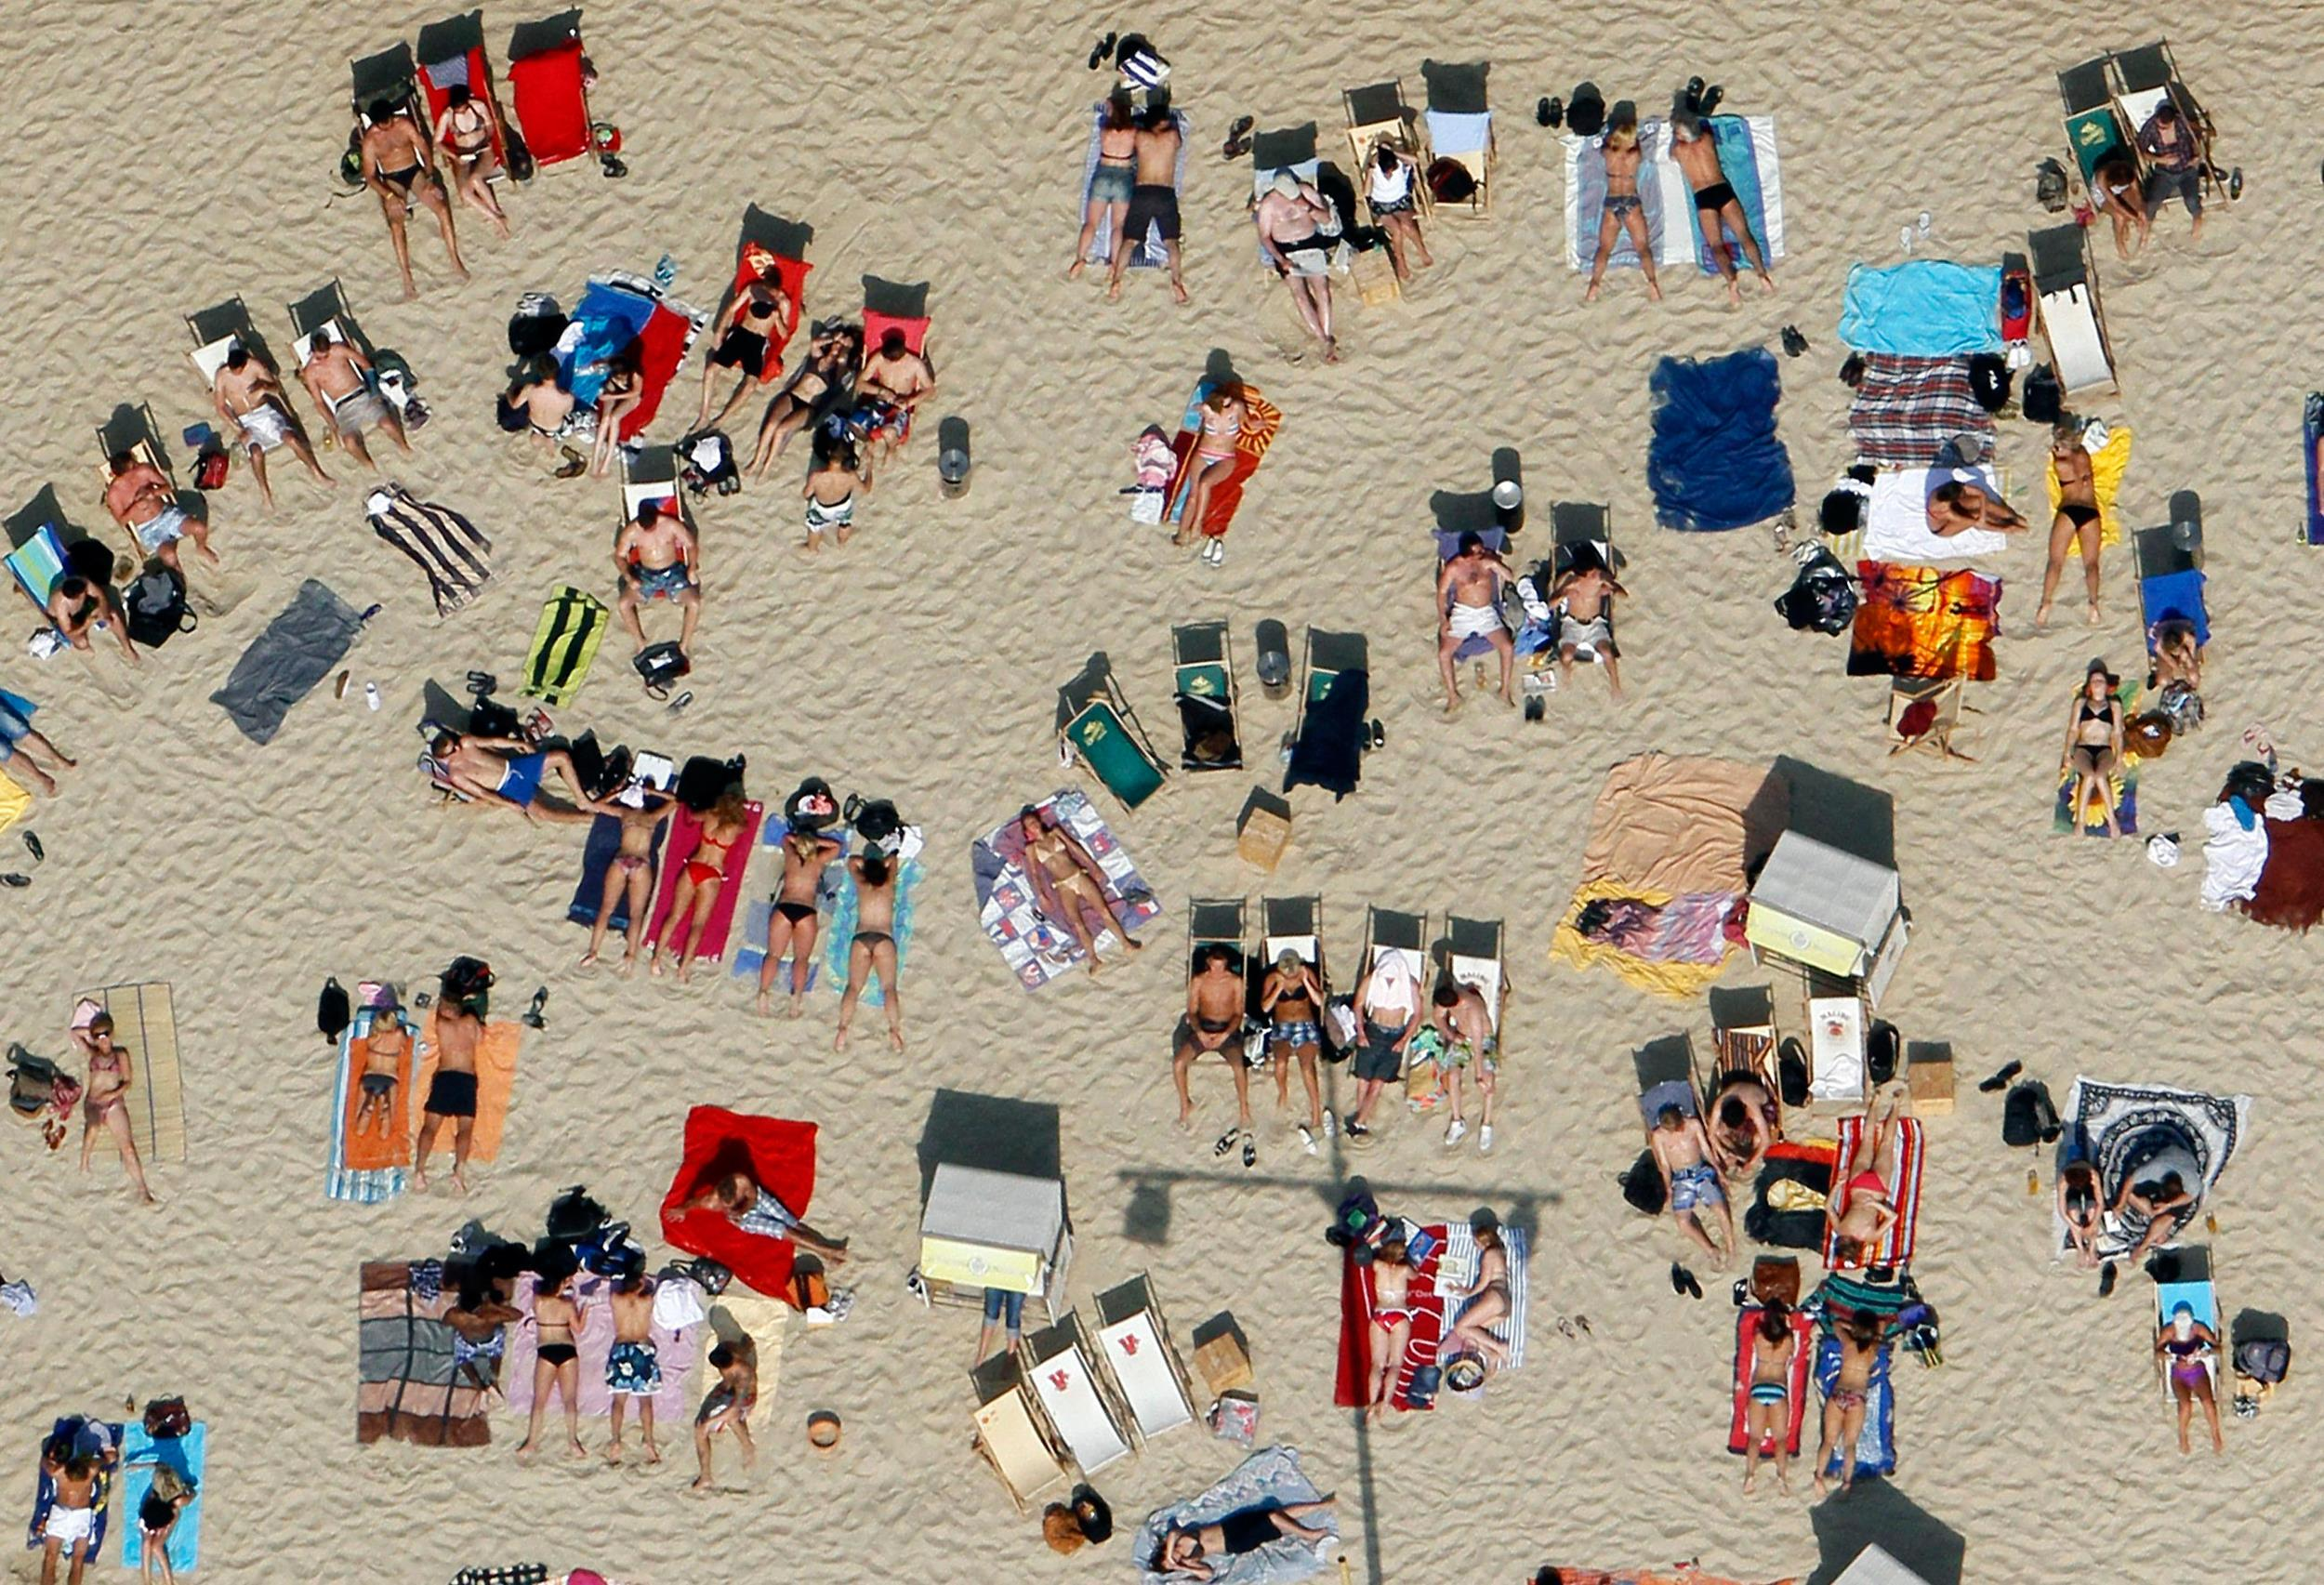 Image: Sunbathers lay in the sun at the